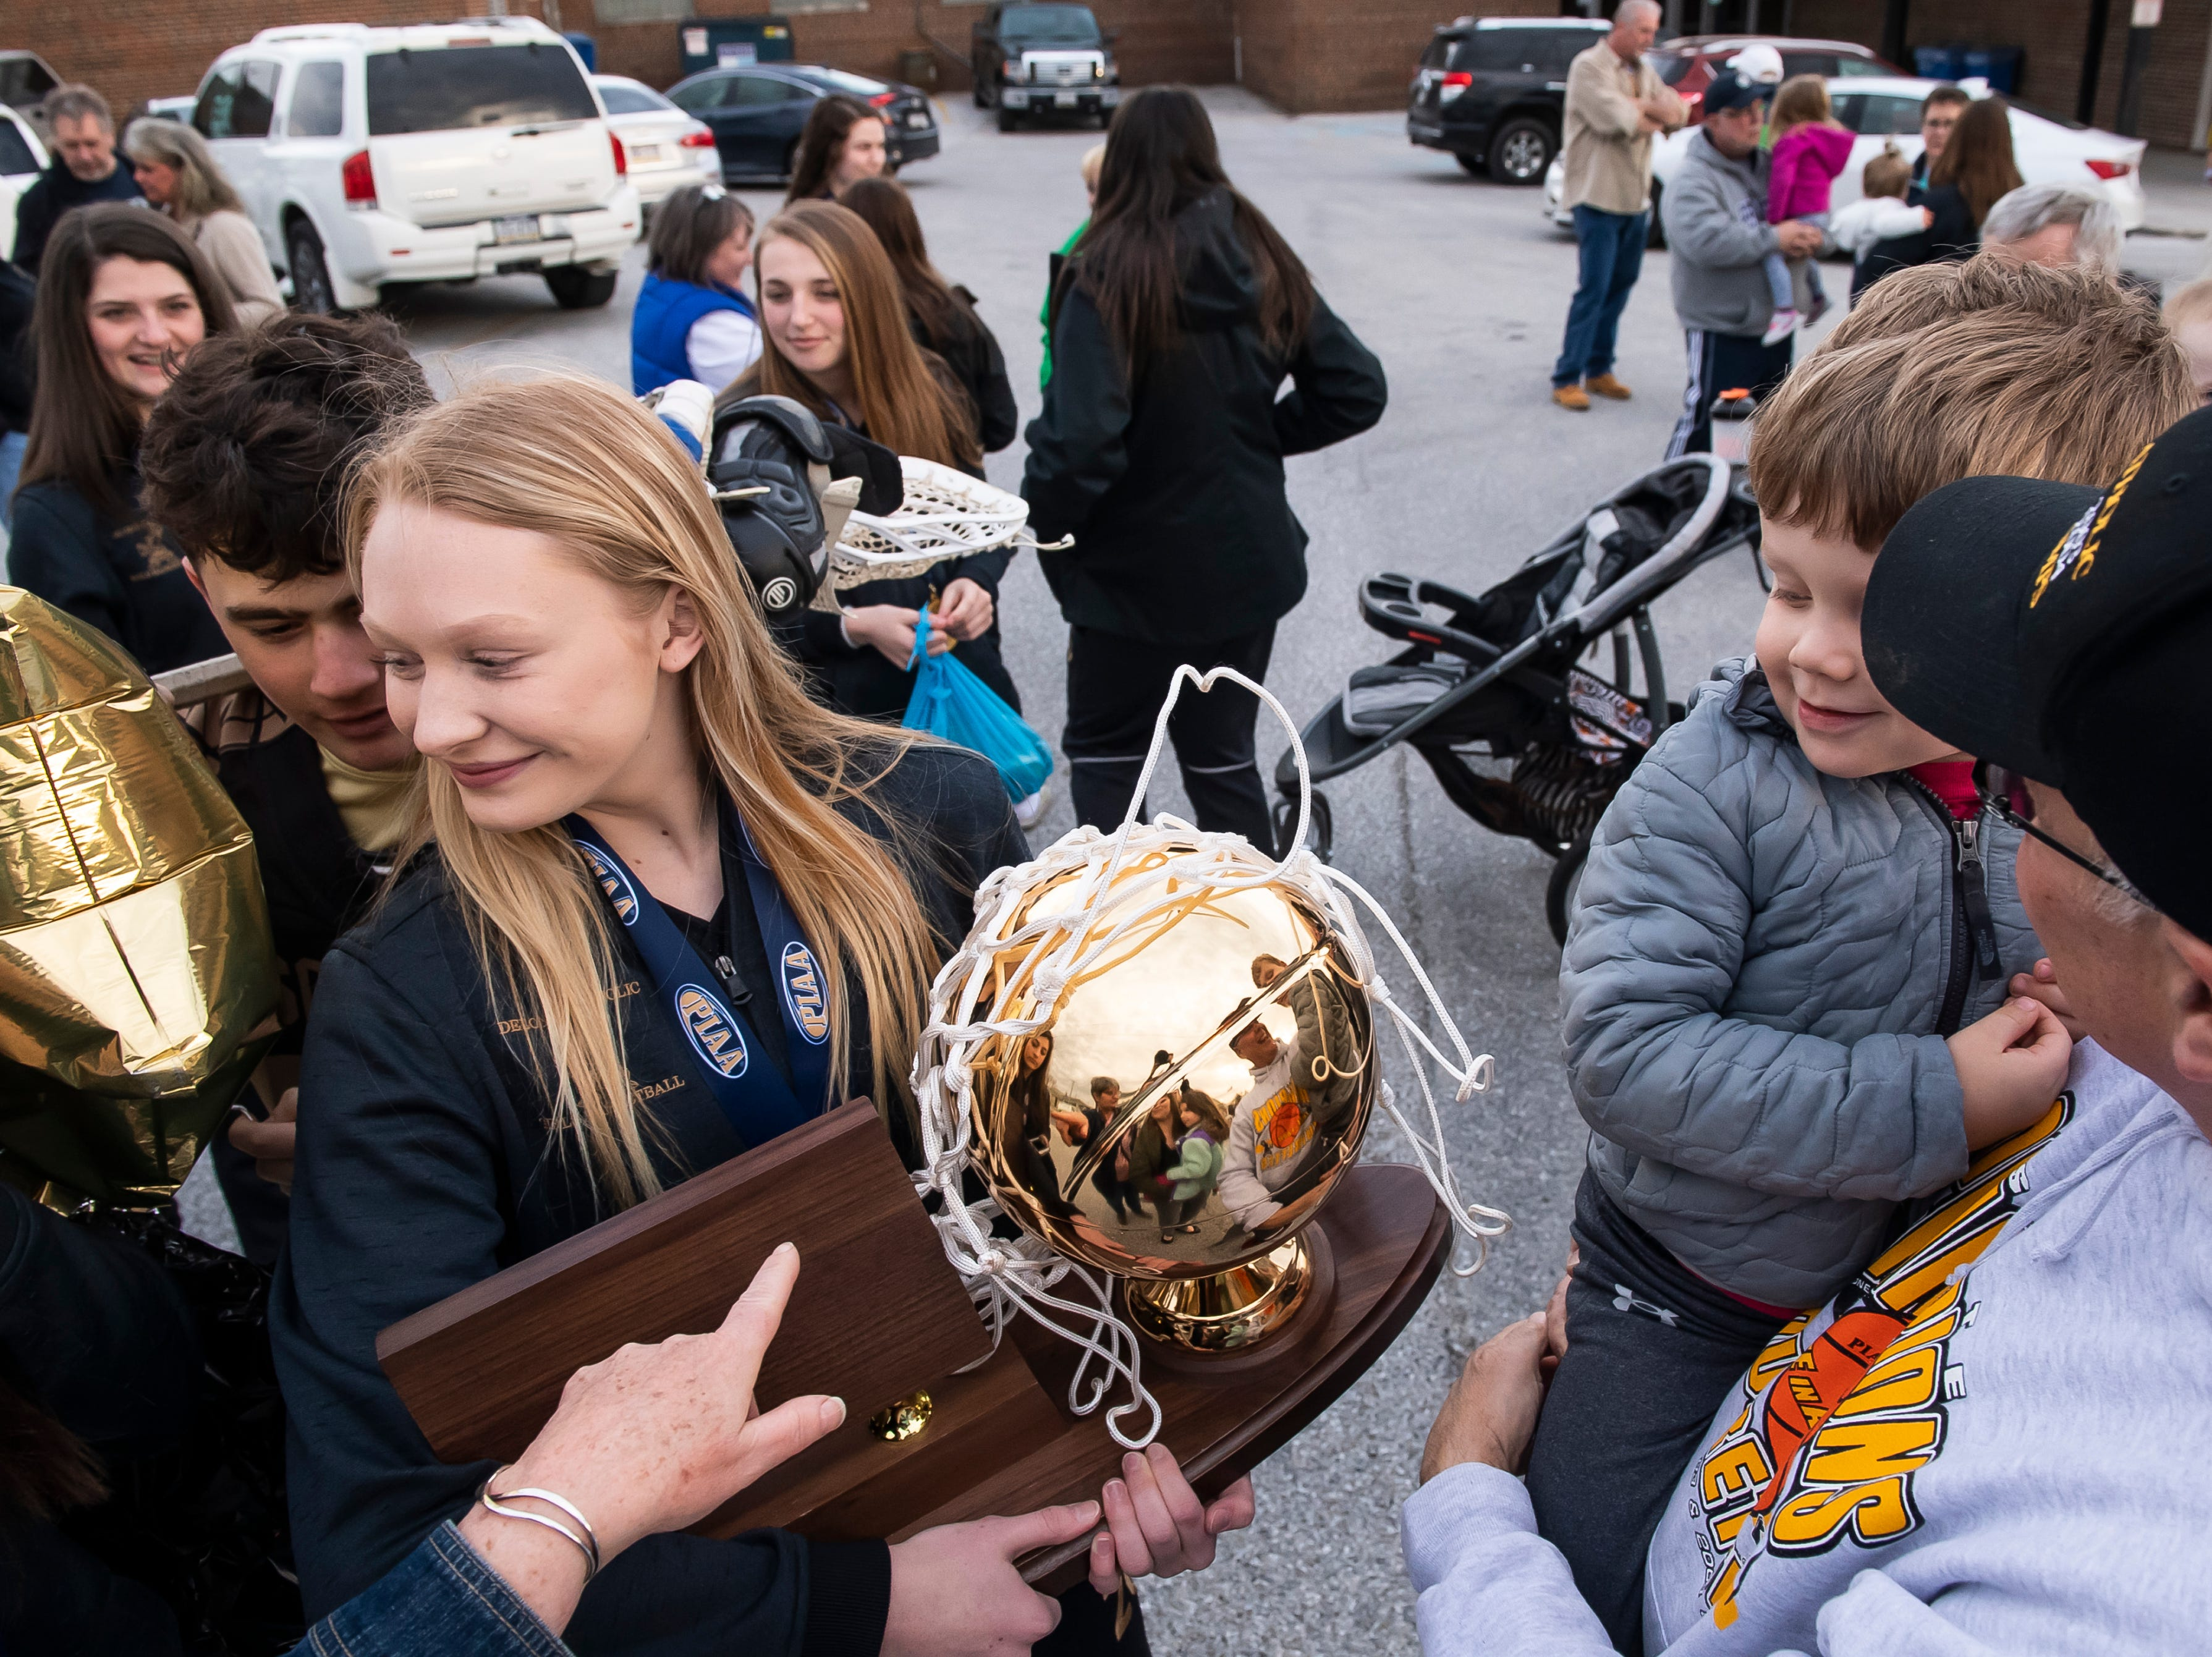 Harrison Bonds, 3, looks at the PIAA championship trophy with some suspicion as his grandfather, Dave Zinn, holds him in his arms following a parade in McSherrystown celebrating the Squirettes' state championship on Thursday, March 28, 2019. Zinn's daughter, Jana Bonds, was a member of the Squirettes' 2003 and 2004 PIAA championship teams.